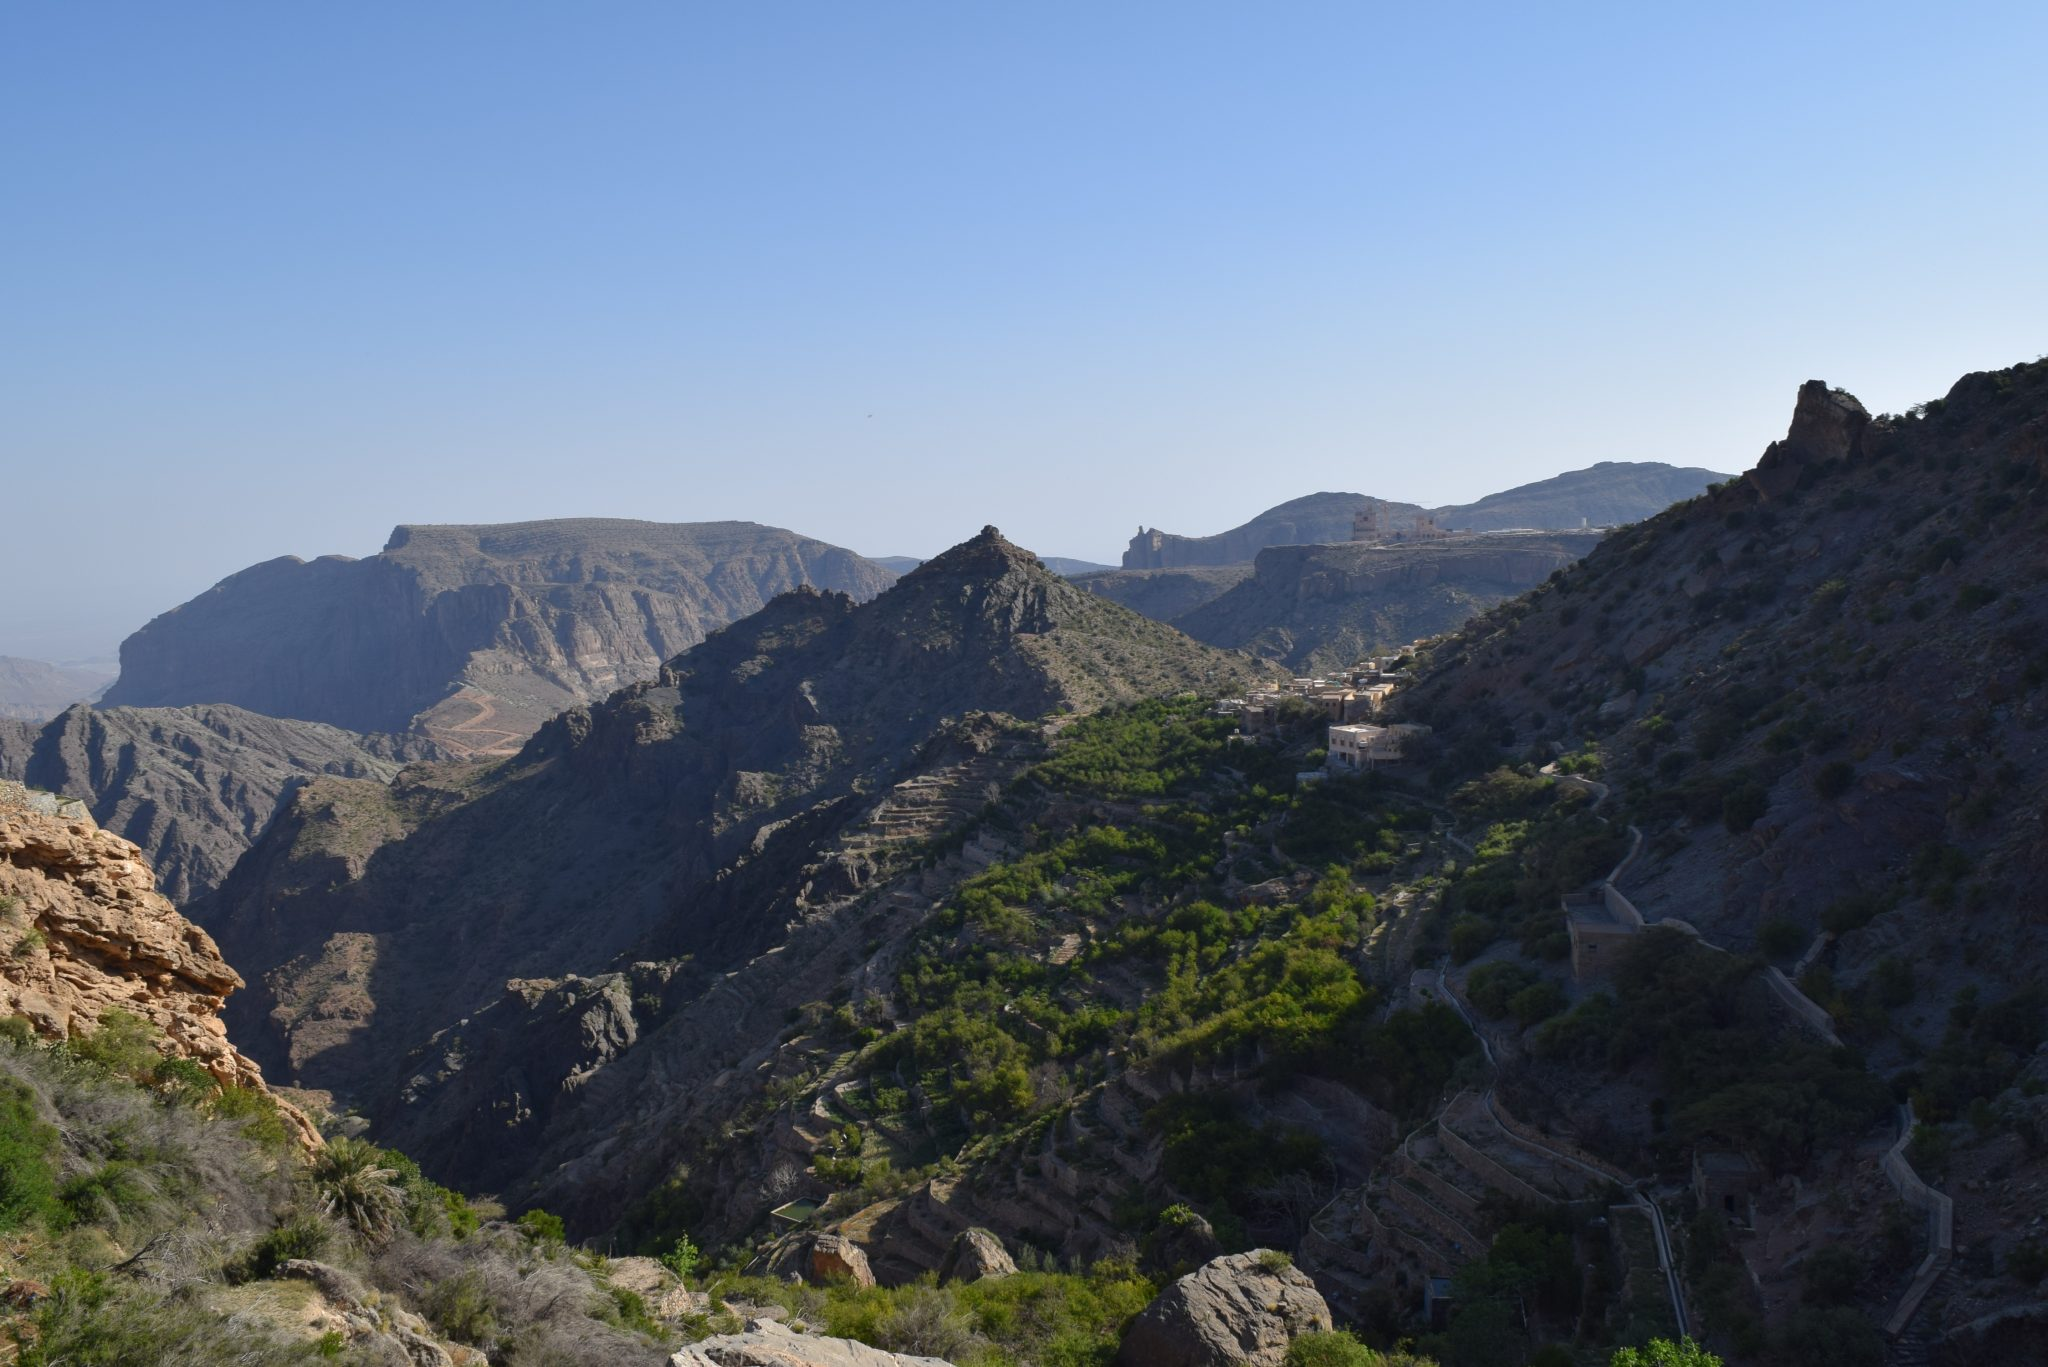 Top Attractions in the City of Muscat, Oman